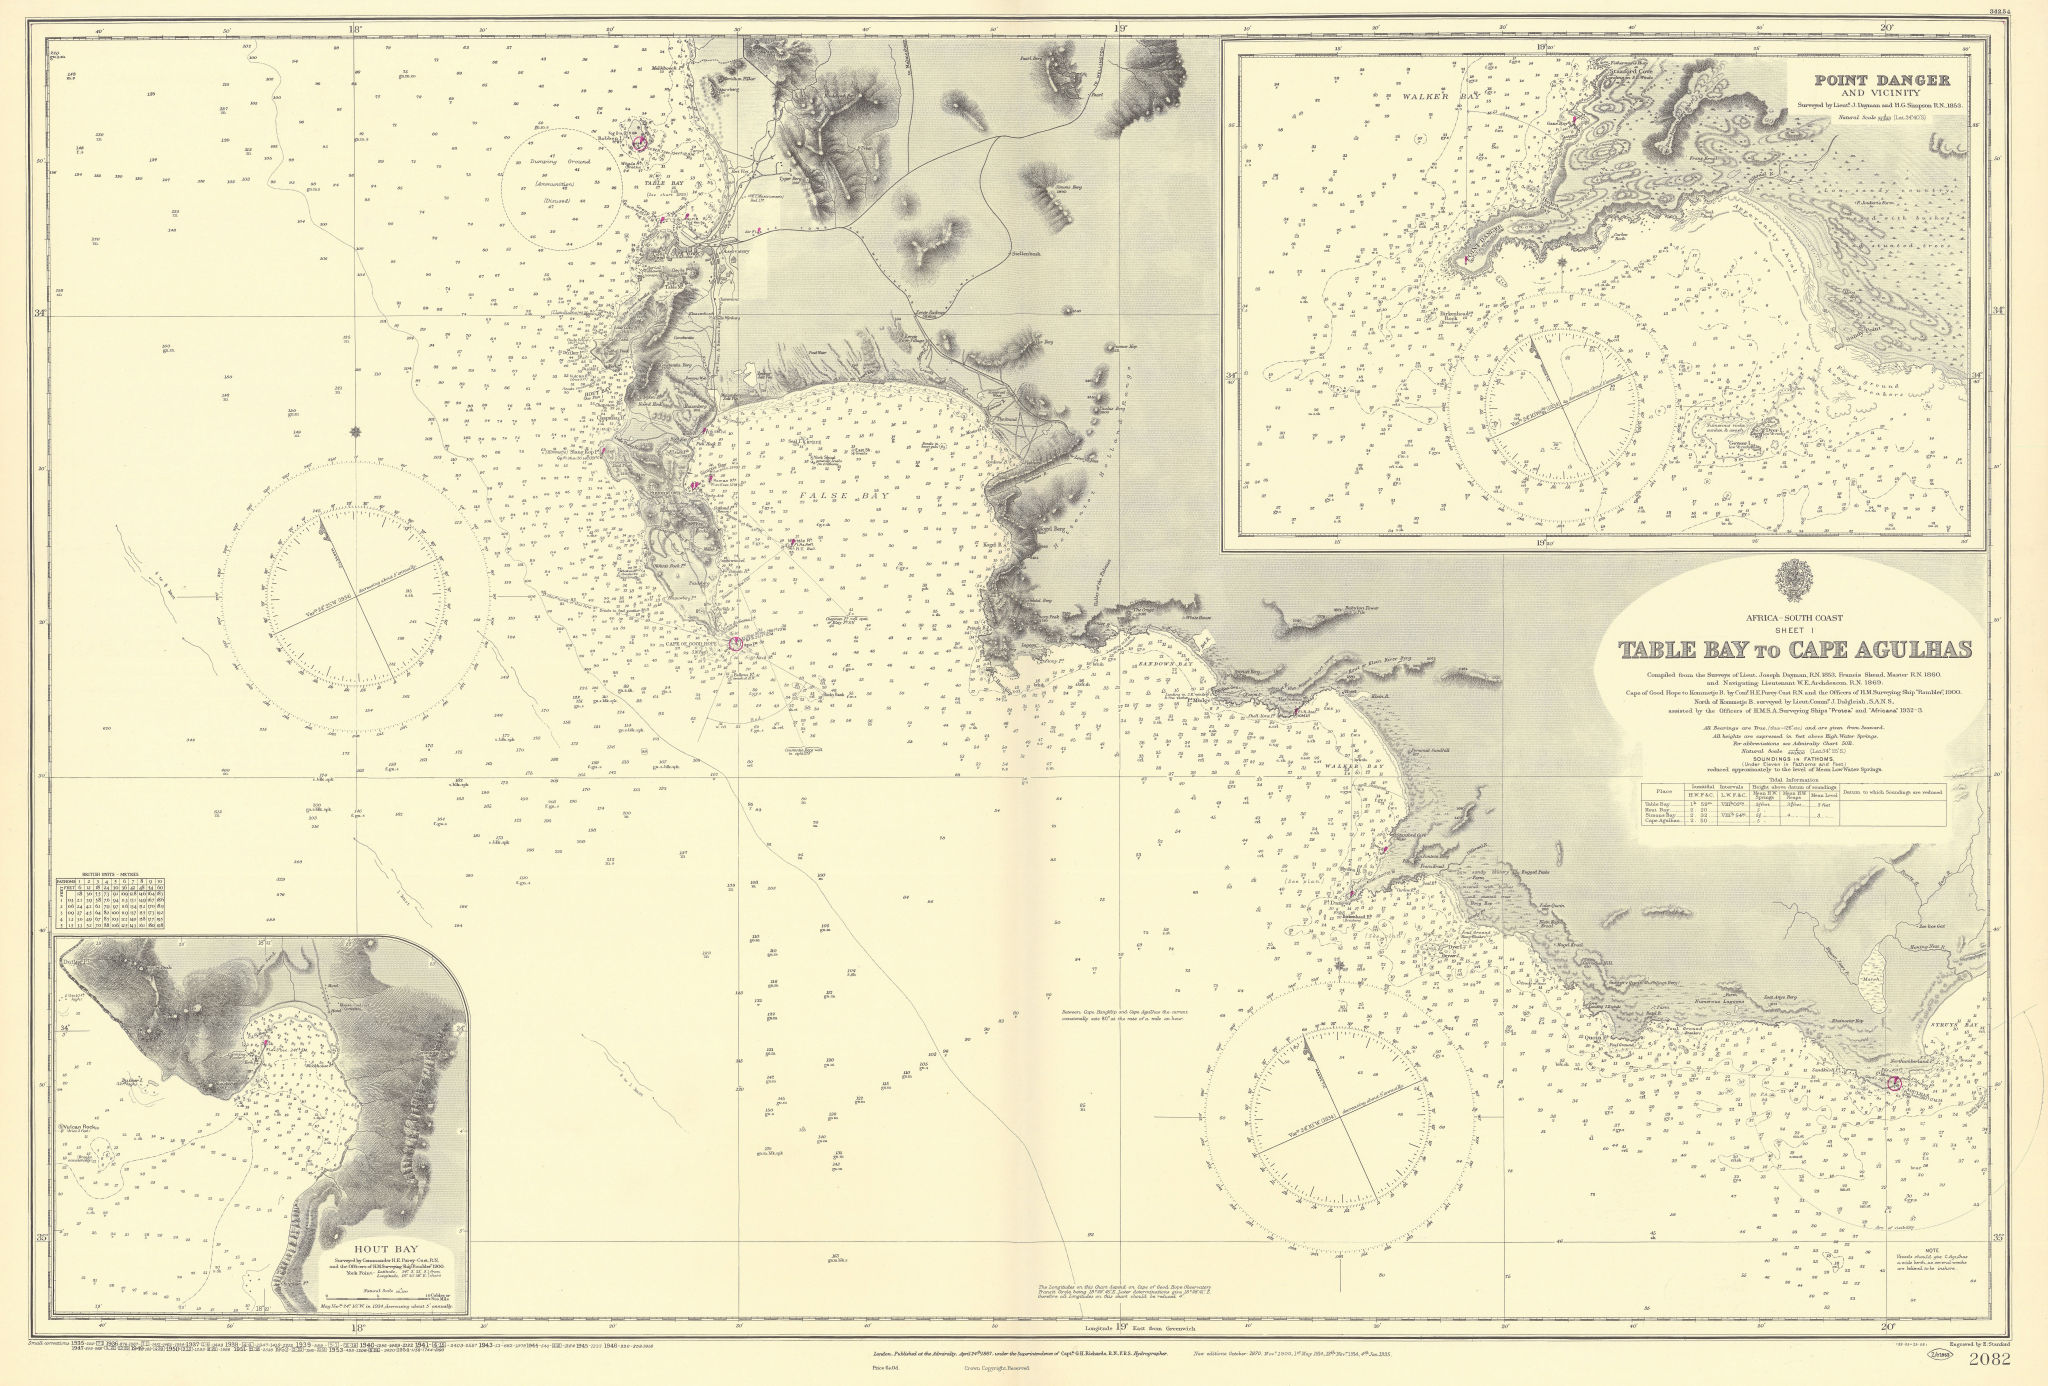 Cape Town Hout Table Bay Pt Danger South Africa ADMIRALTY chart 1867 (1954) map